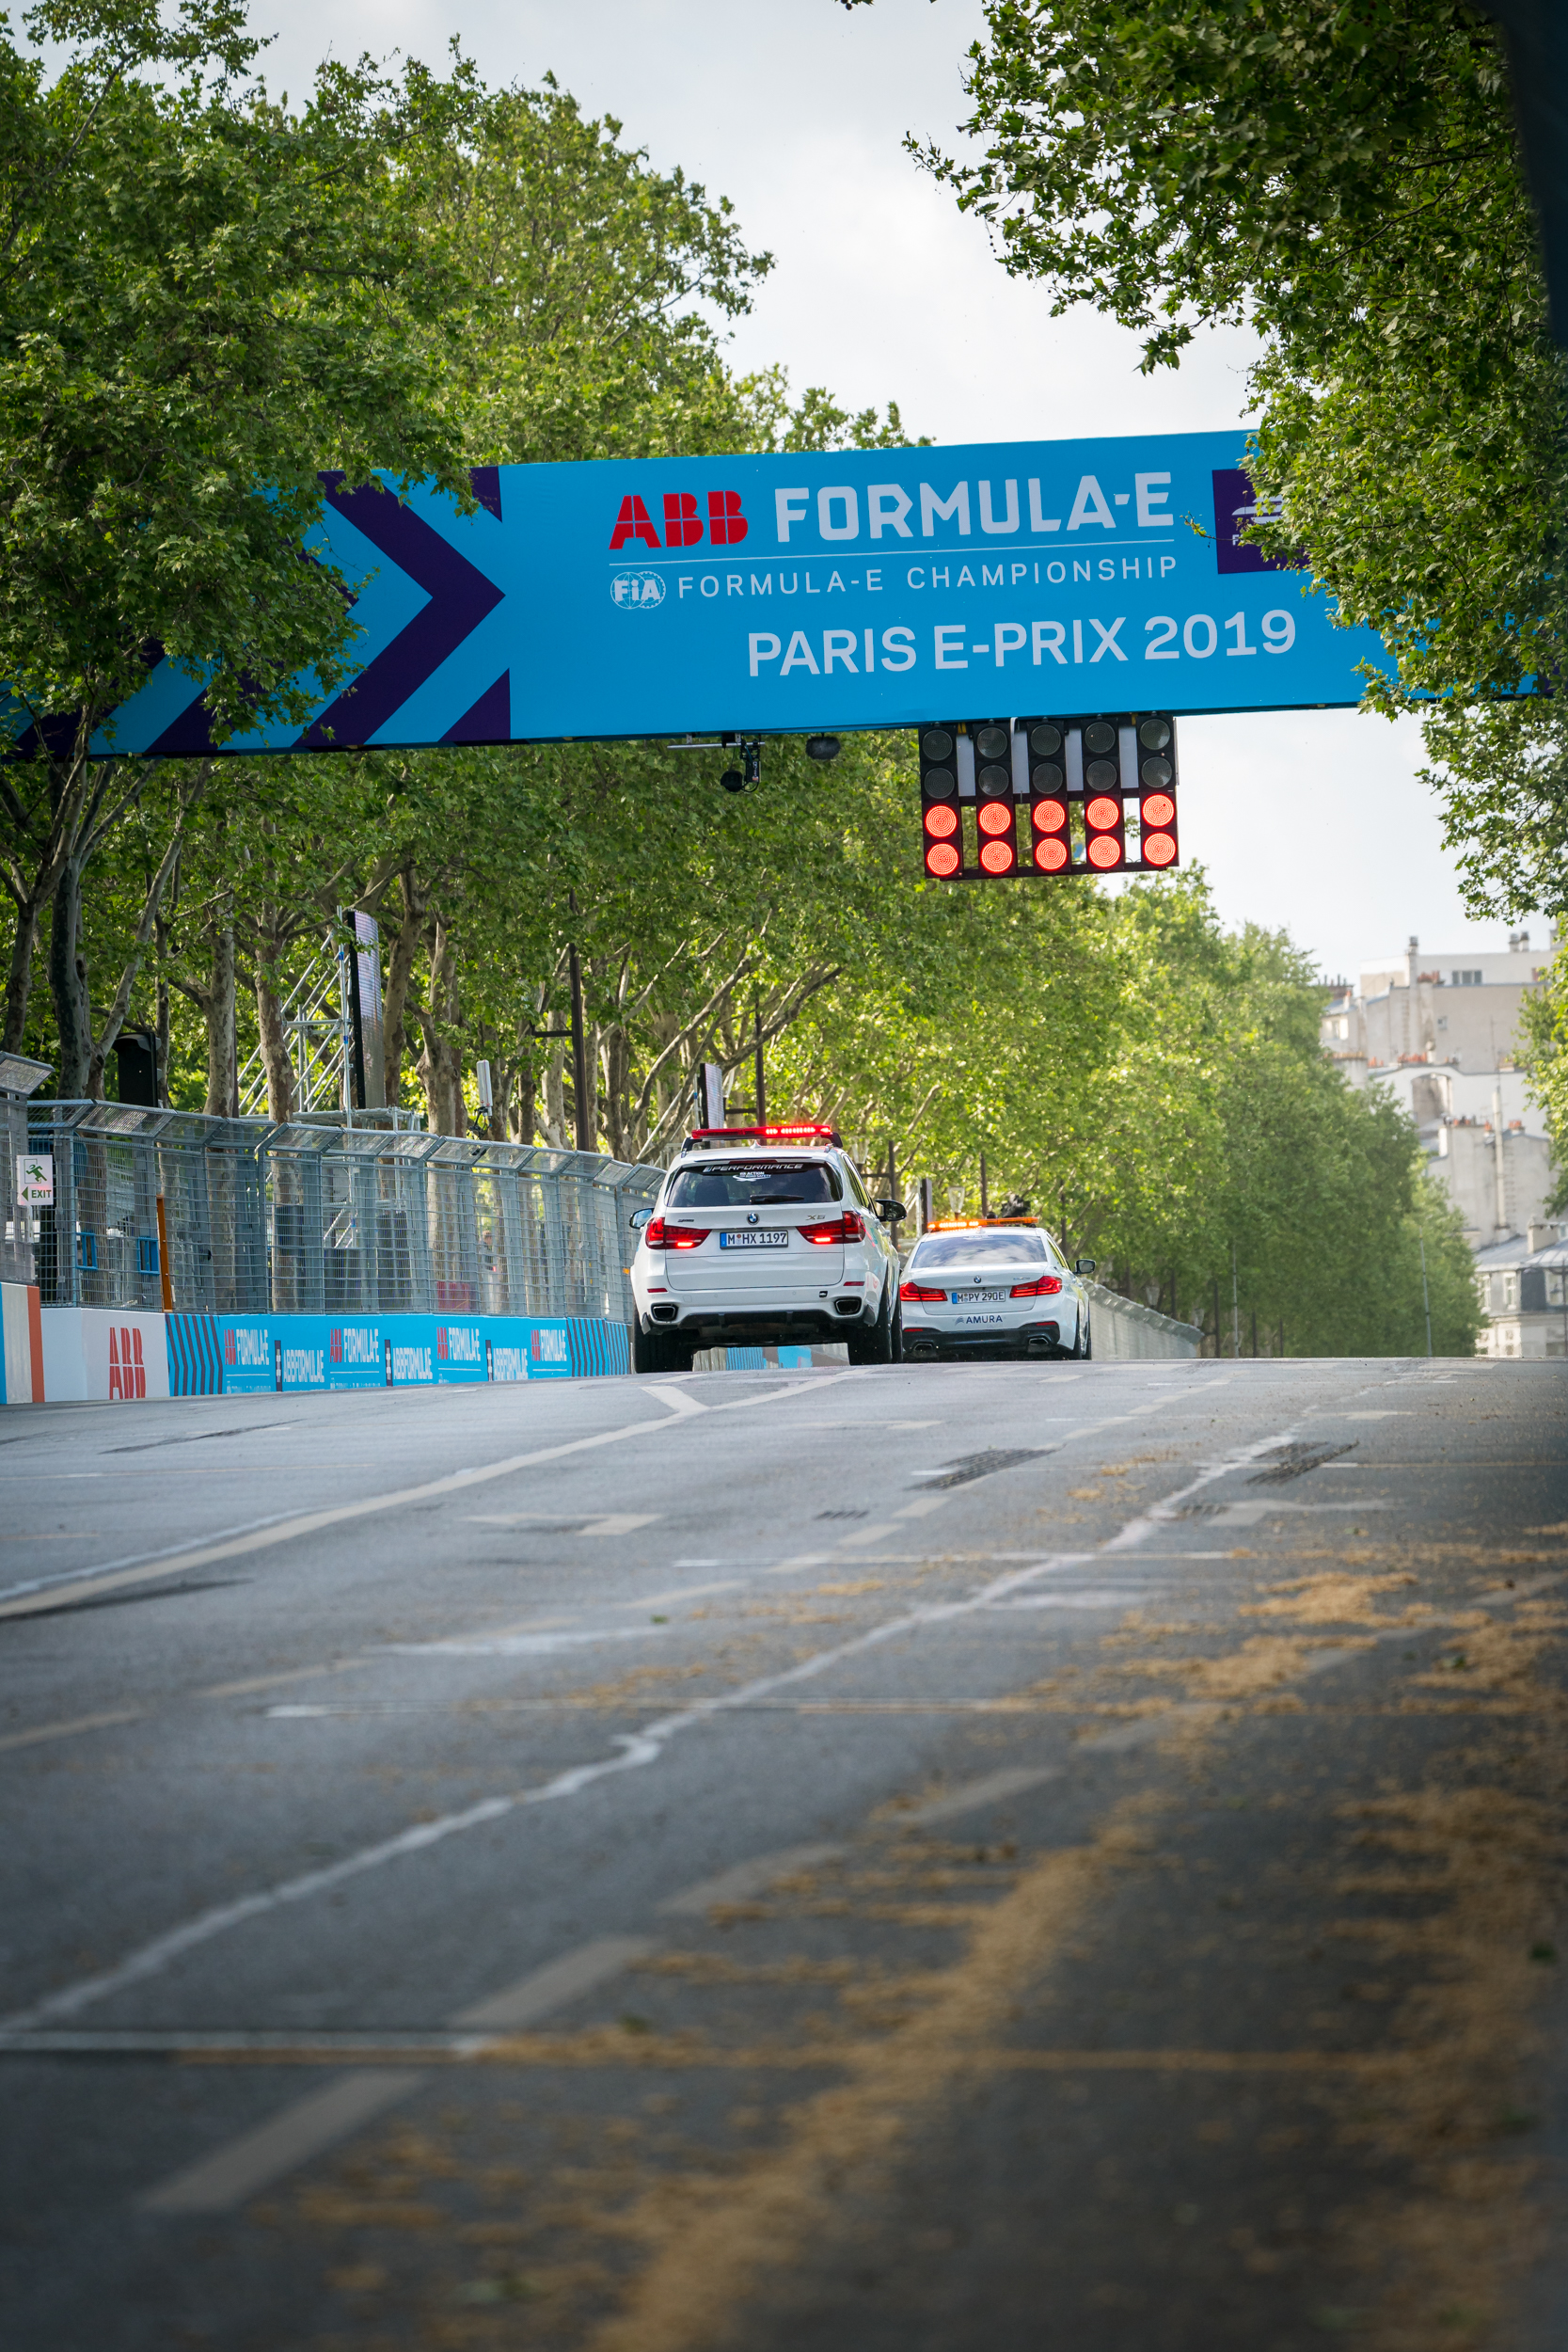 BMW i_Formula E Paris 2019_26&27-04-19_Florian Leger_SHARE & DARE_HD_N°-268.jpg